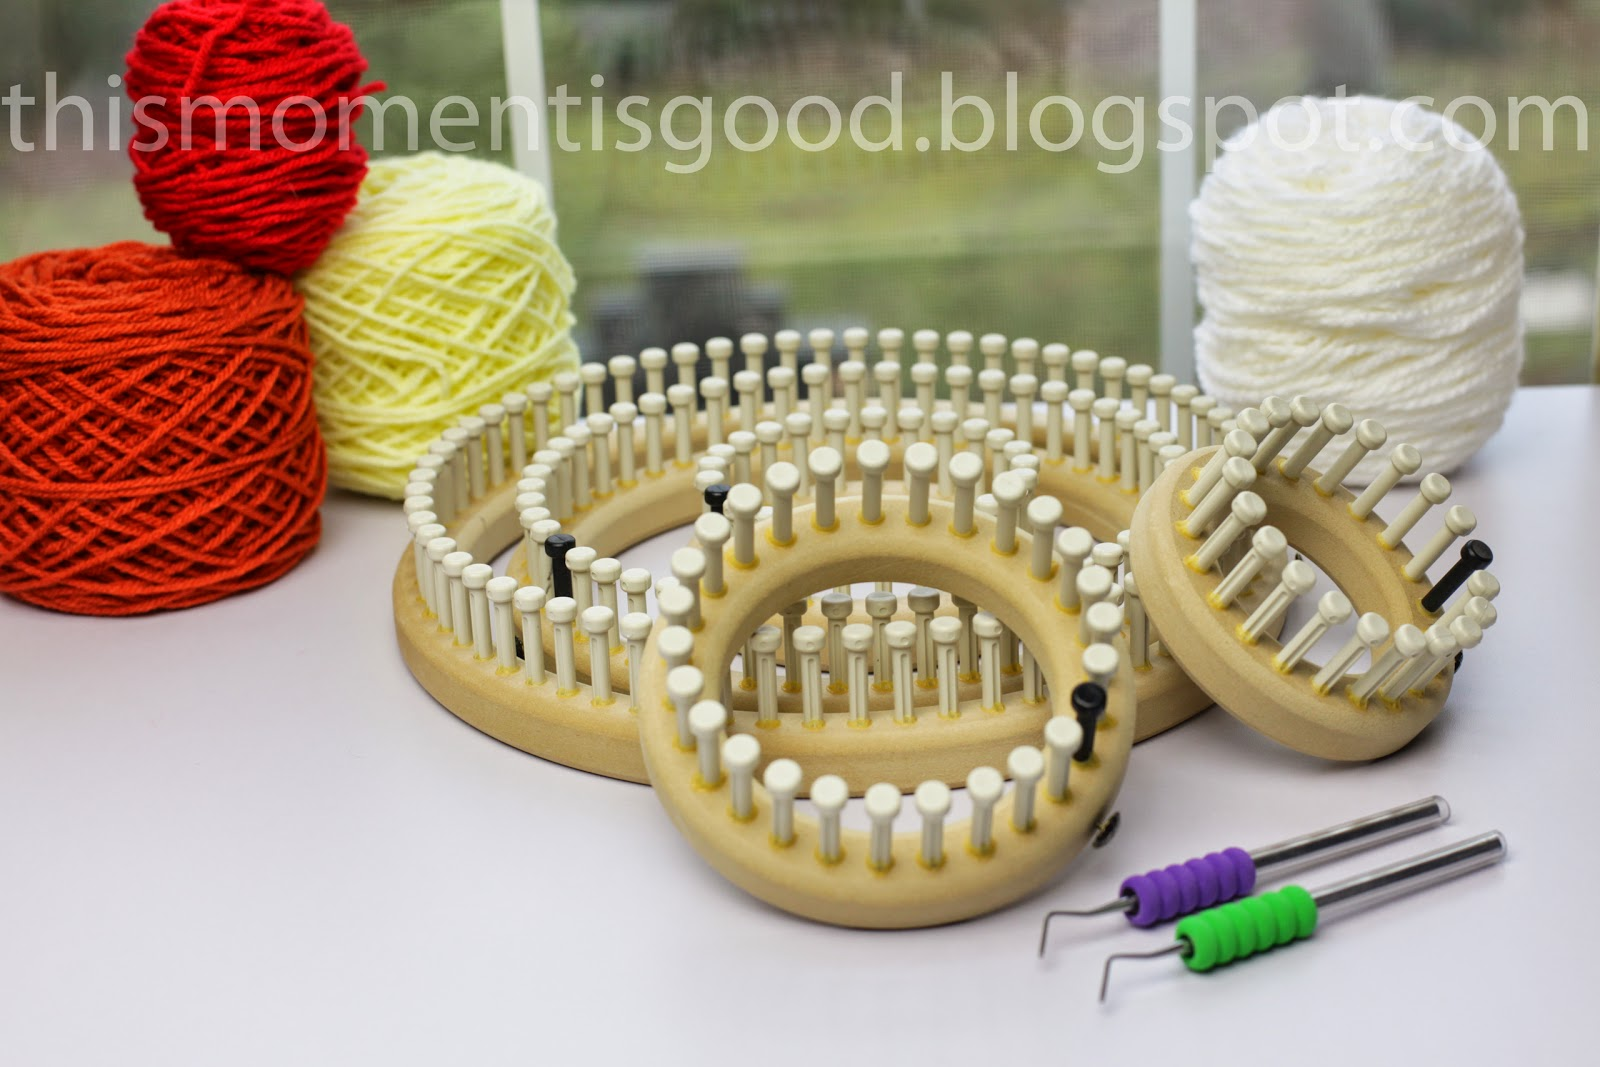 Knitting Loom 12 Pegs : A look at cindwood looms loom knitting by this moment